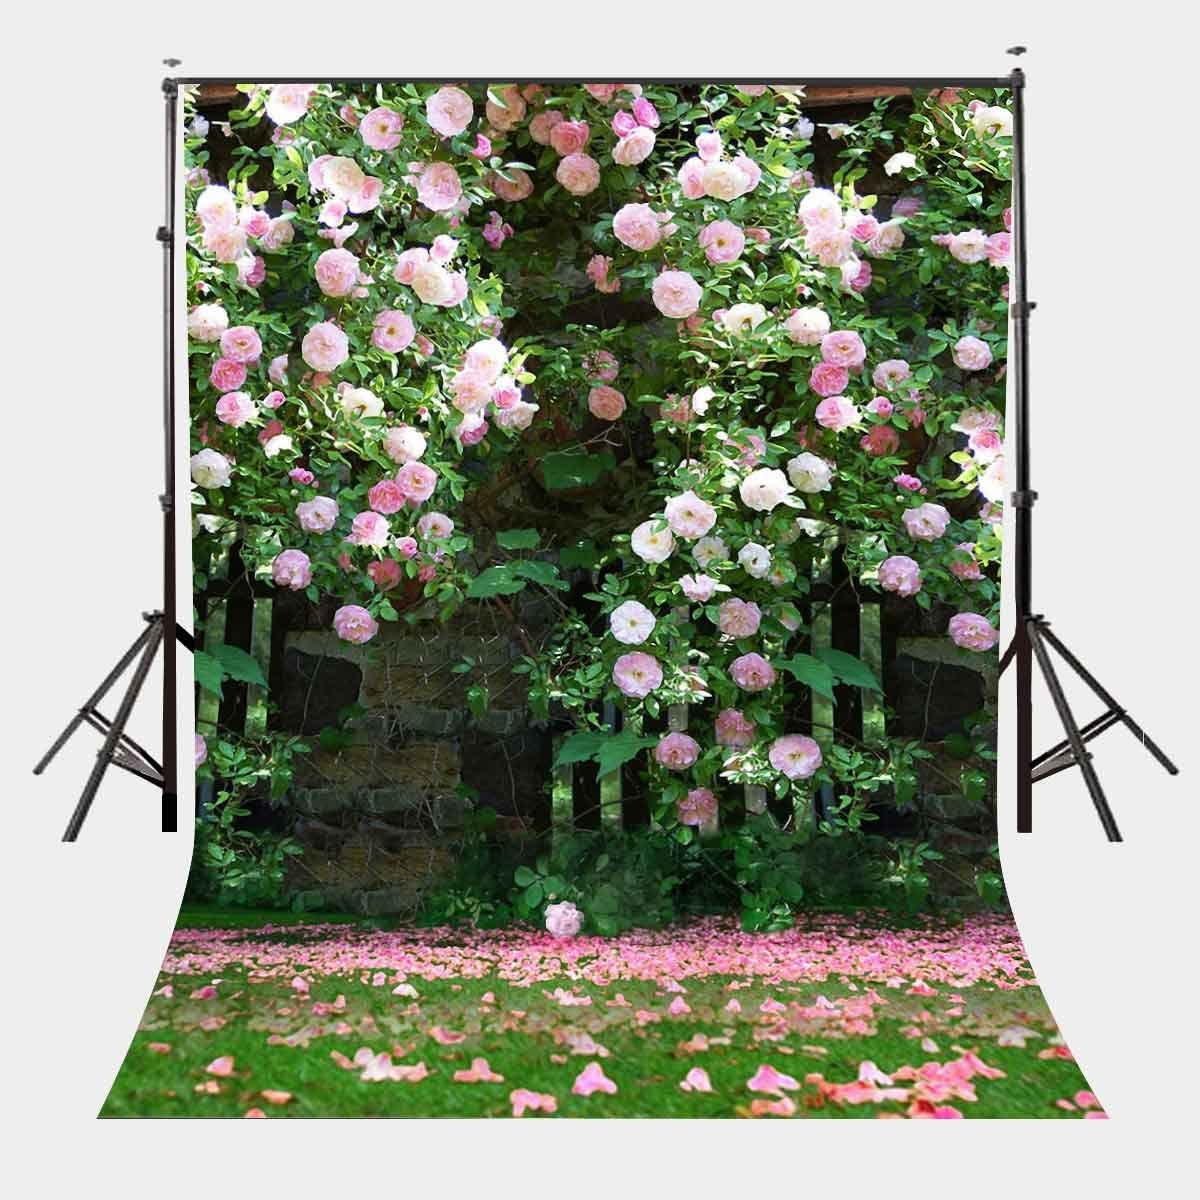 LYLYCTY 5x7ft Nature Scenery Backdrop Millennial Pink Flower Wall Green Leaves Photography Background A Vibrant Garden Backdrop LYLX008